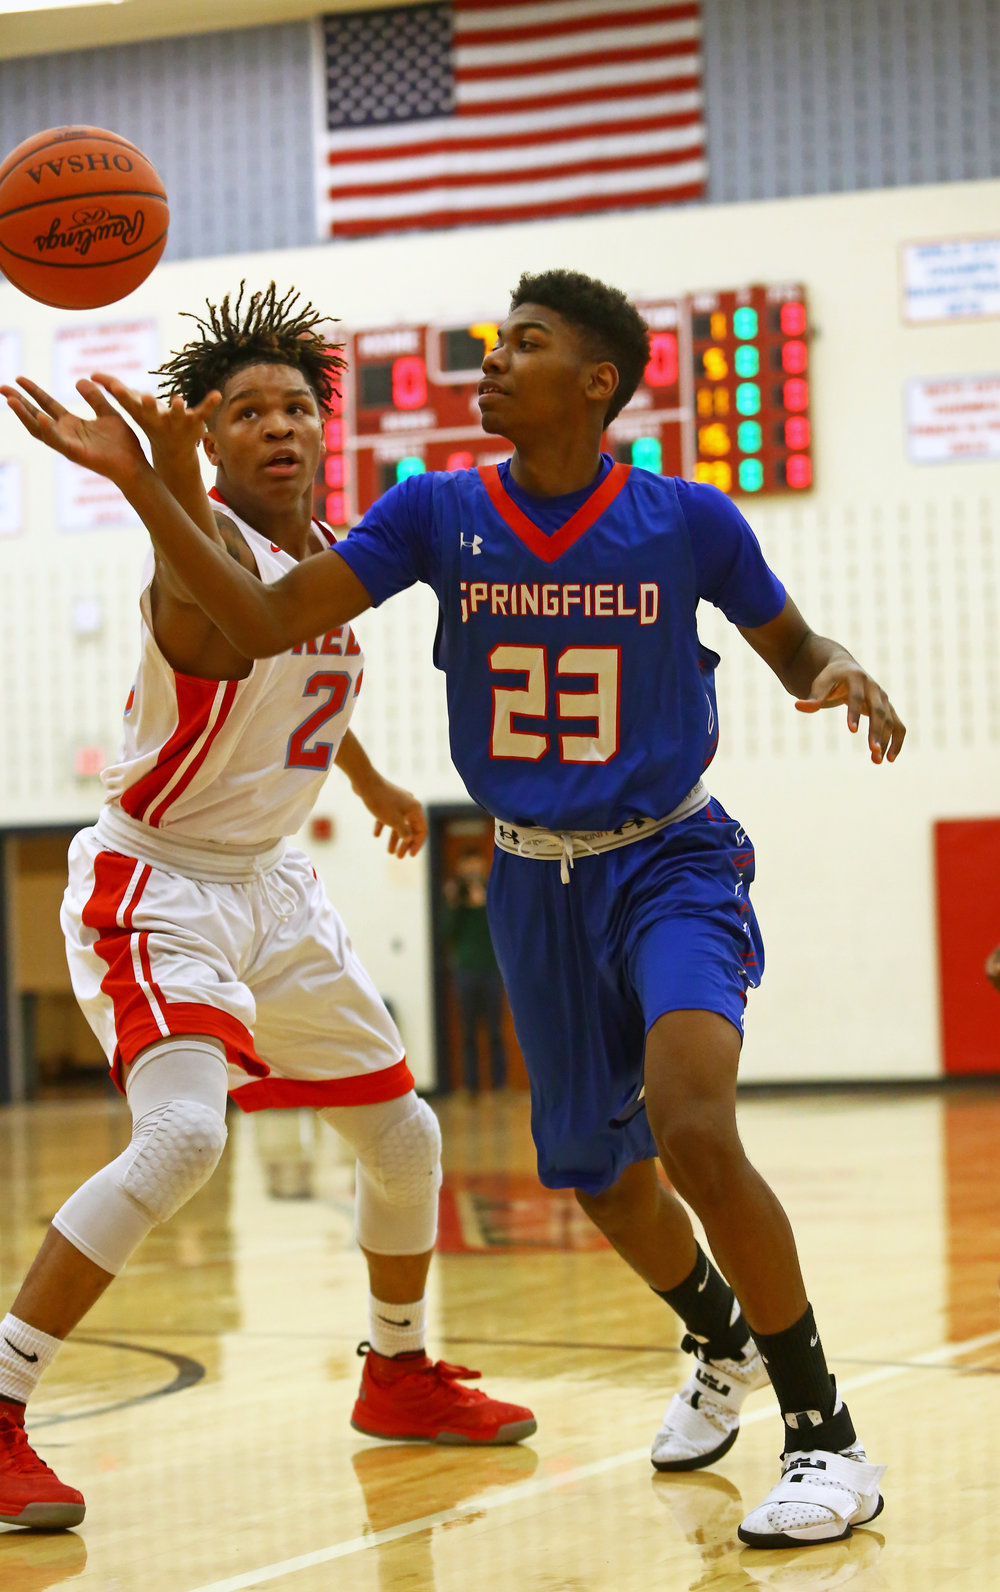 Bowsher High School's Darryl Robinson, left, reaches for the ball that Springfield High School's Denzel Prince loses control of during the boys basketball game at Bowsher High School in Toledo, Oh. on Thursday, Dec. 1, 2016.